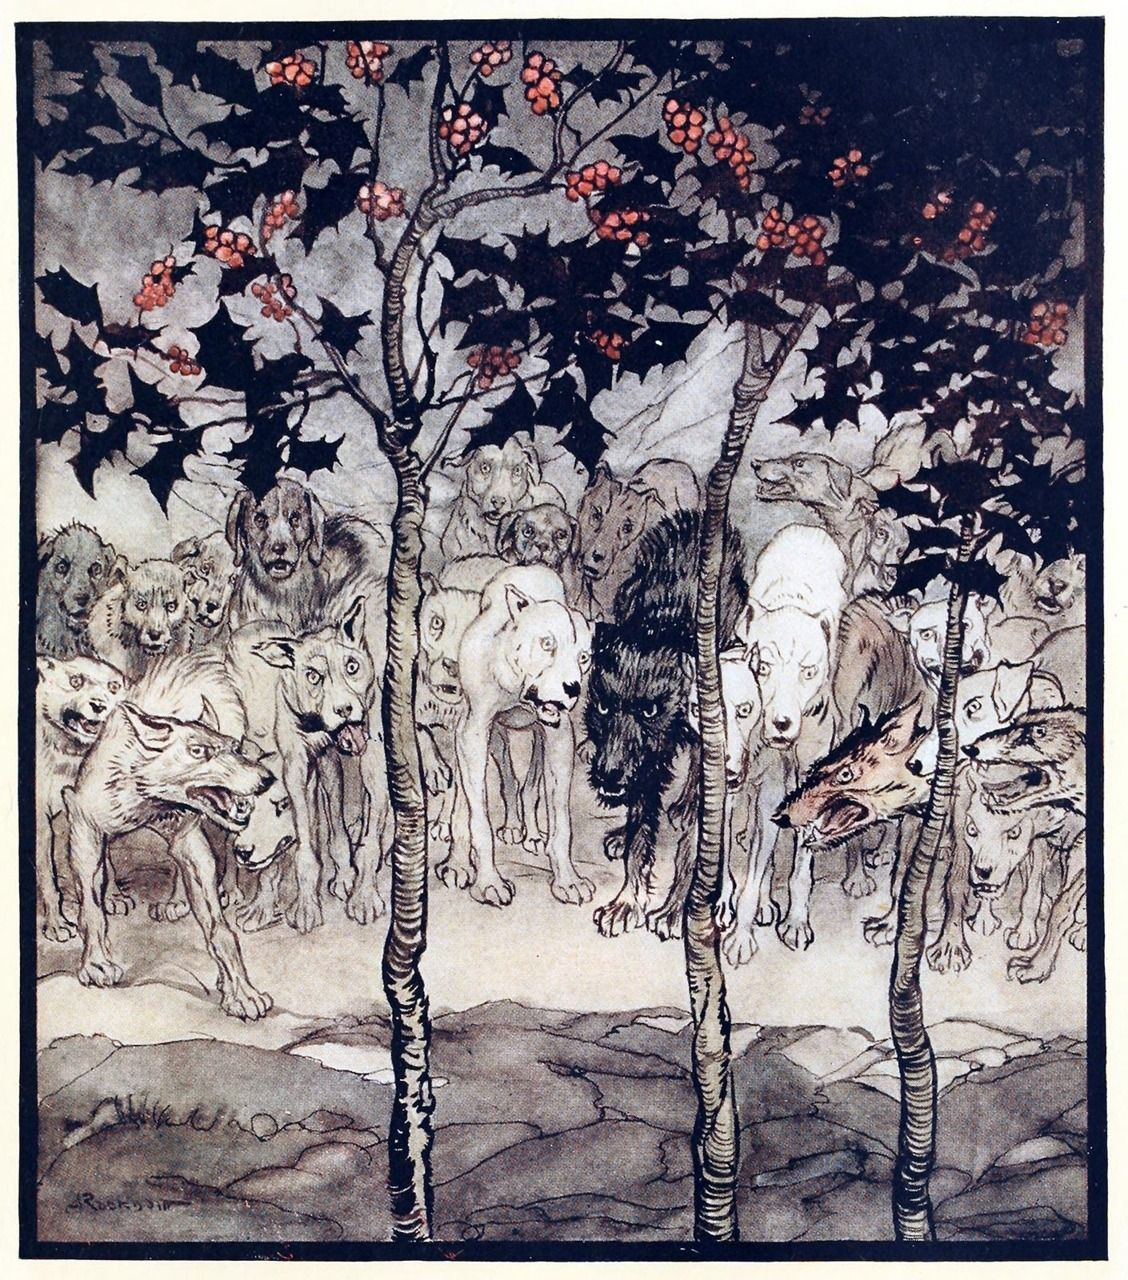 They stood outside, filled savagery and terror. Arthur Rackham, from Irish fairy tales, by James Stephens, London, 1920. (Source: archive.org)